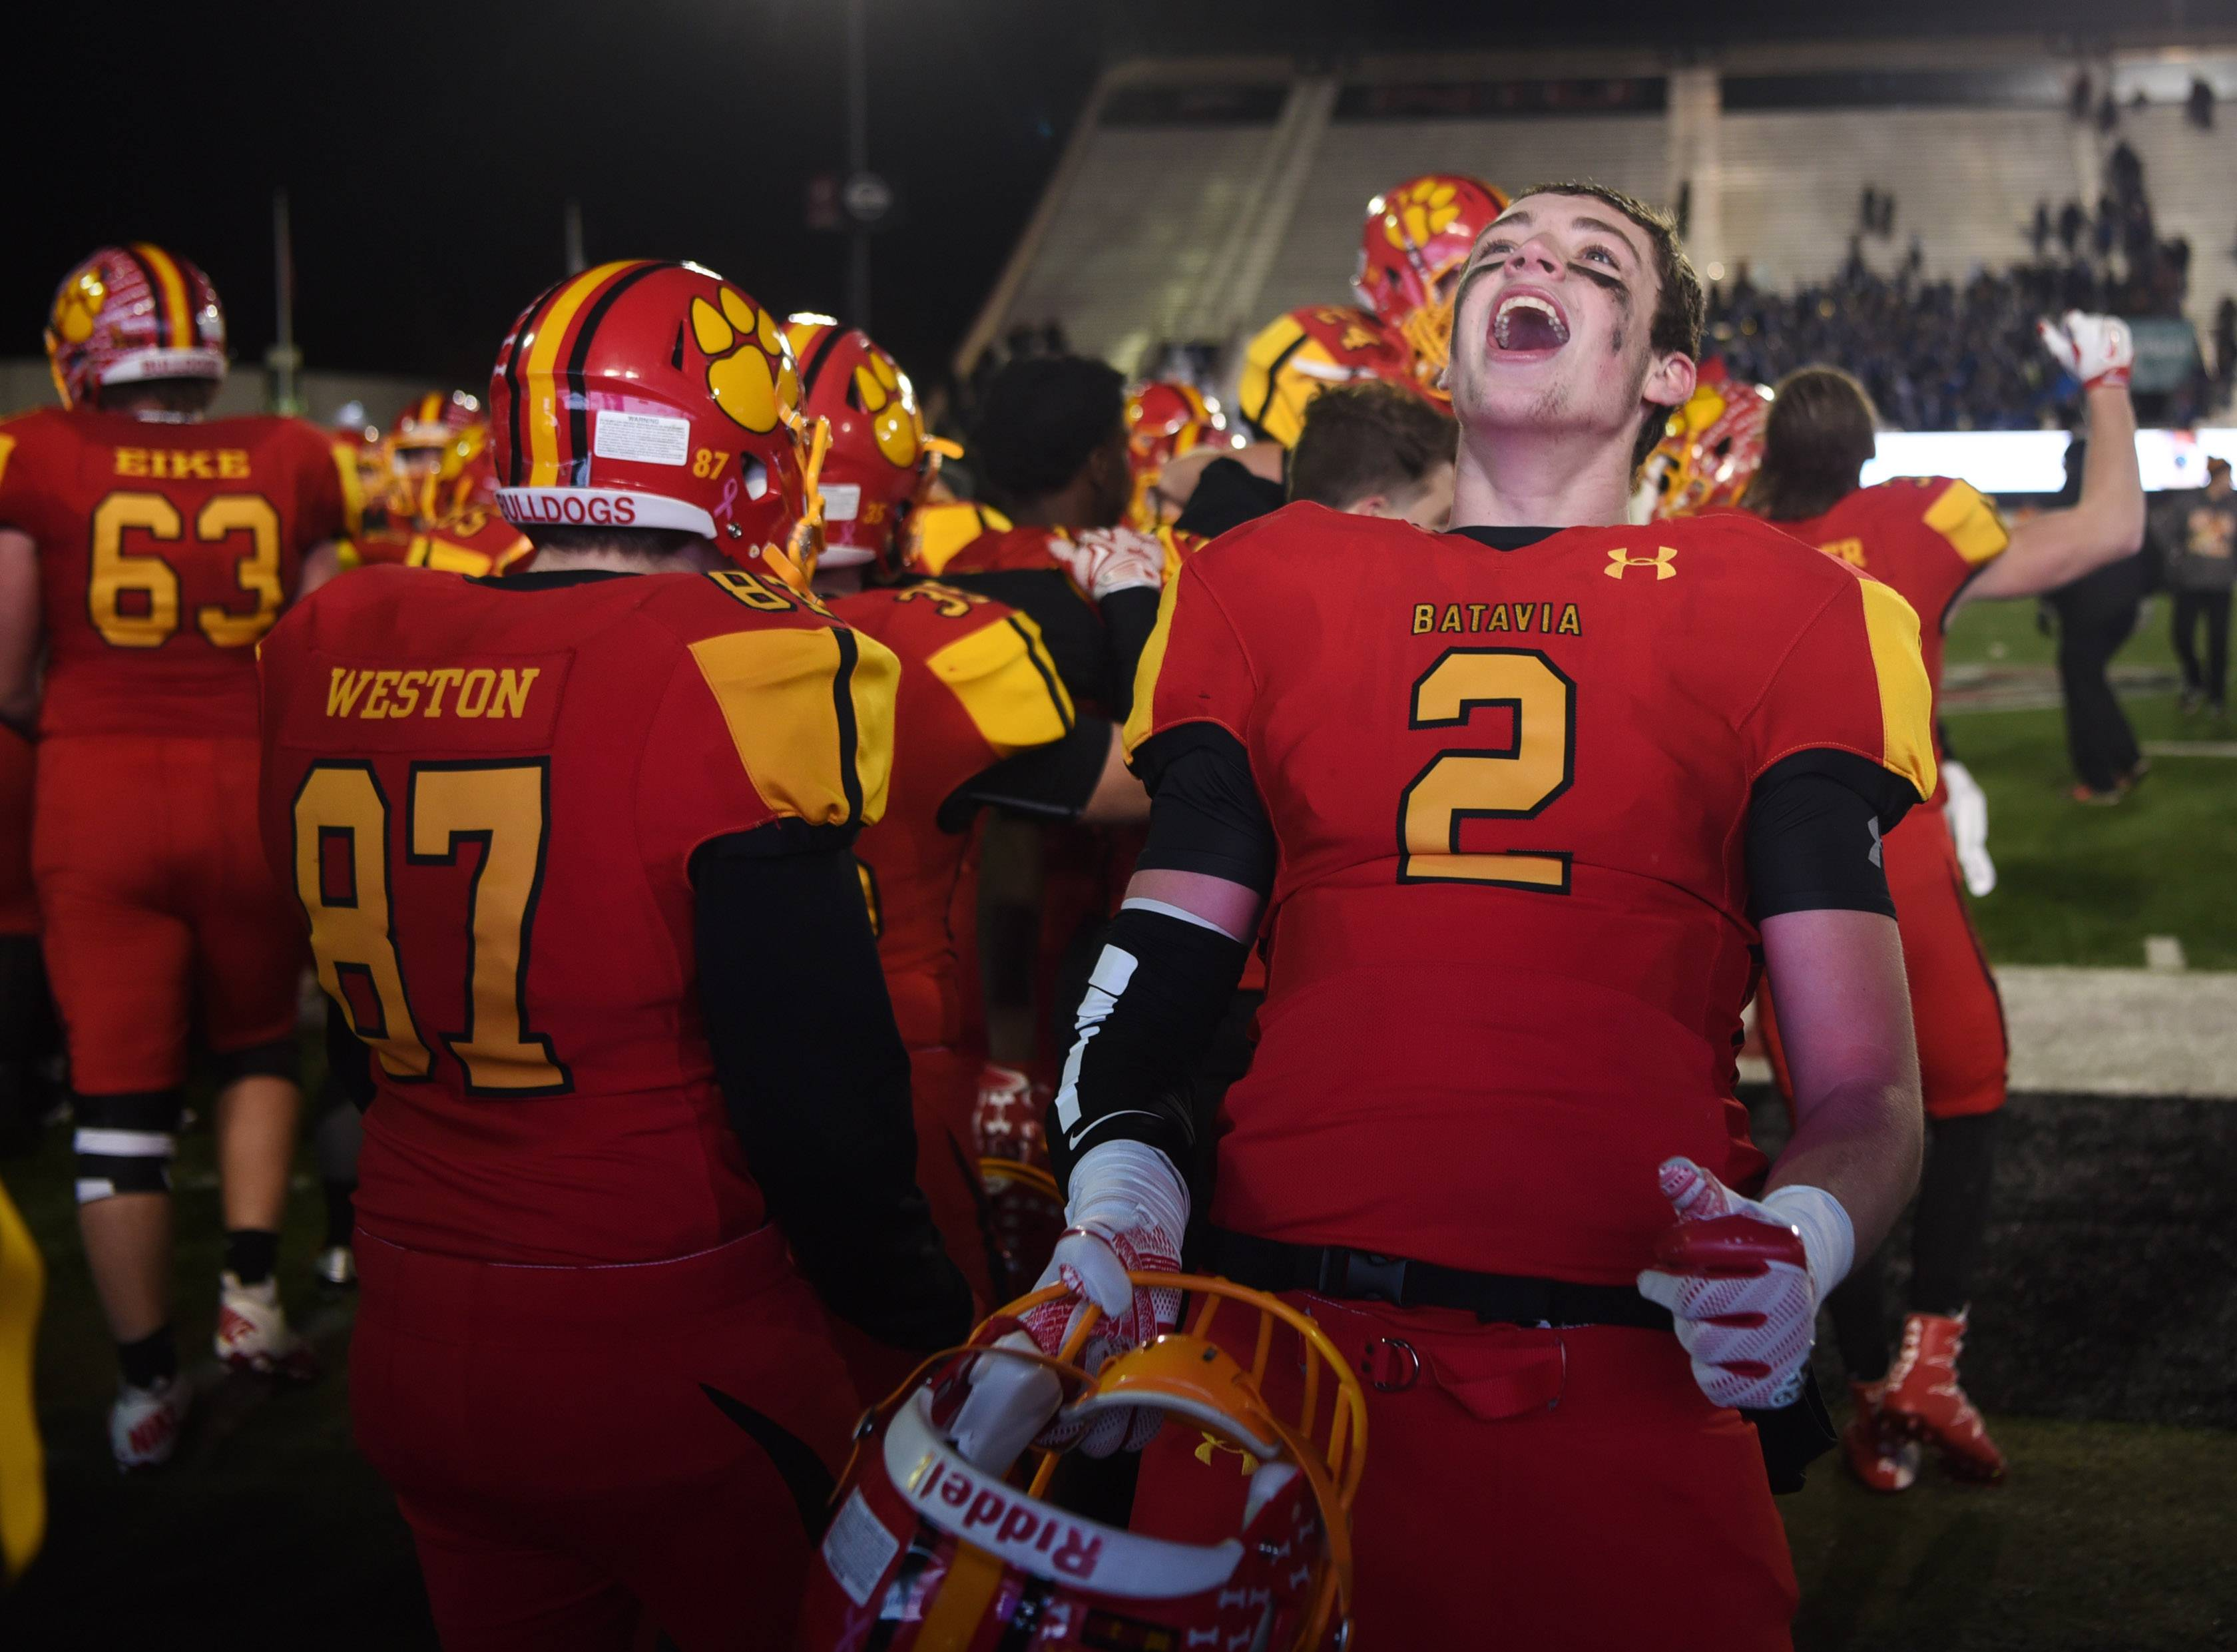 Batavia's 'brothers' savor their state championship dream